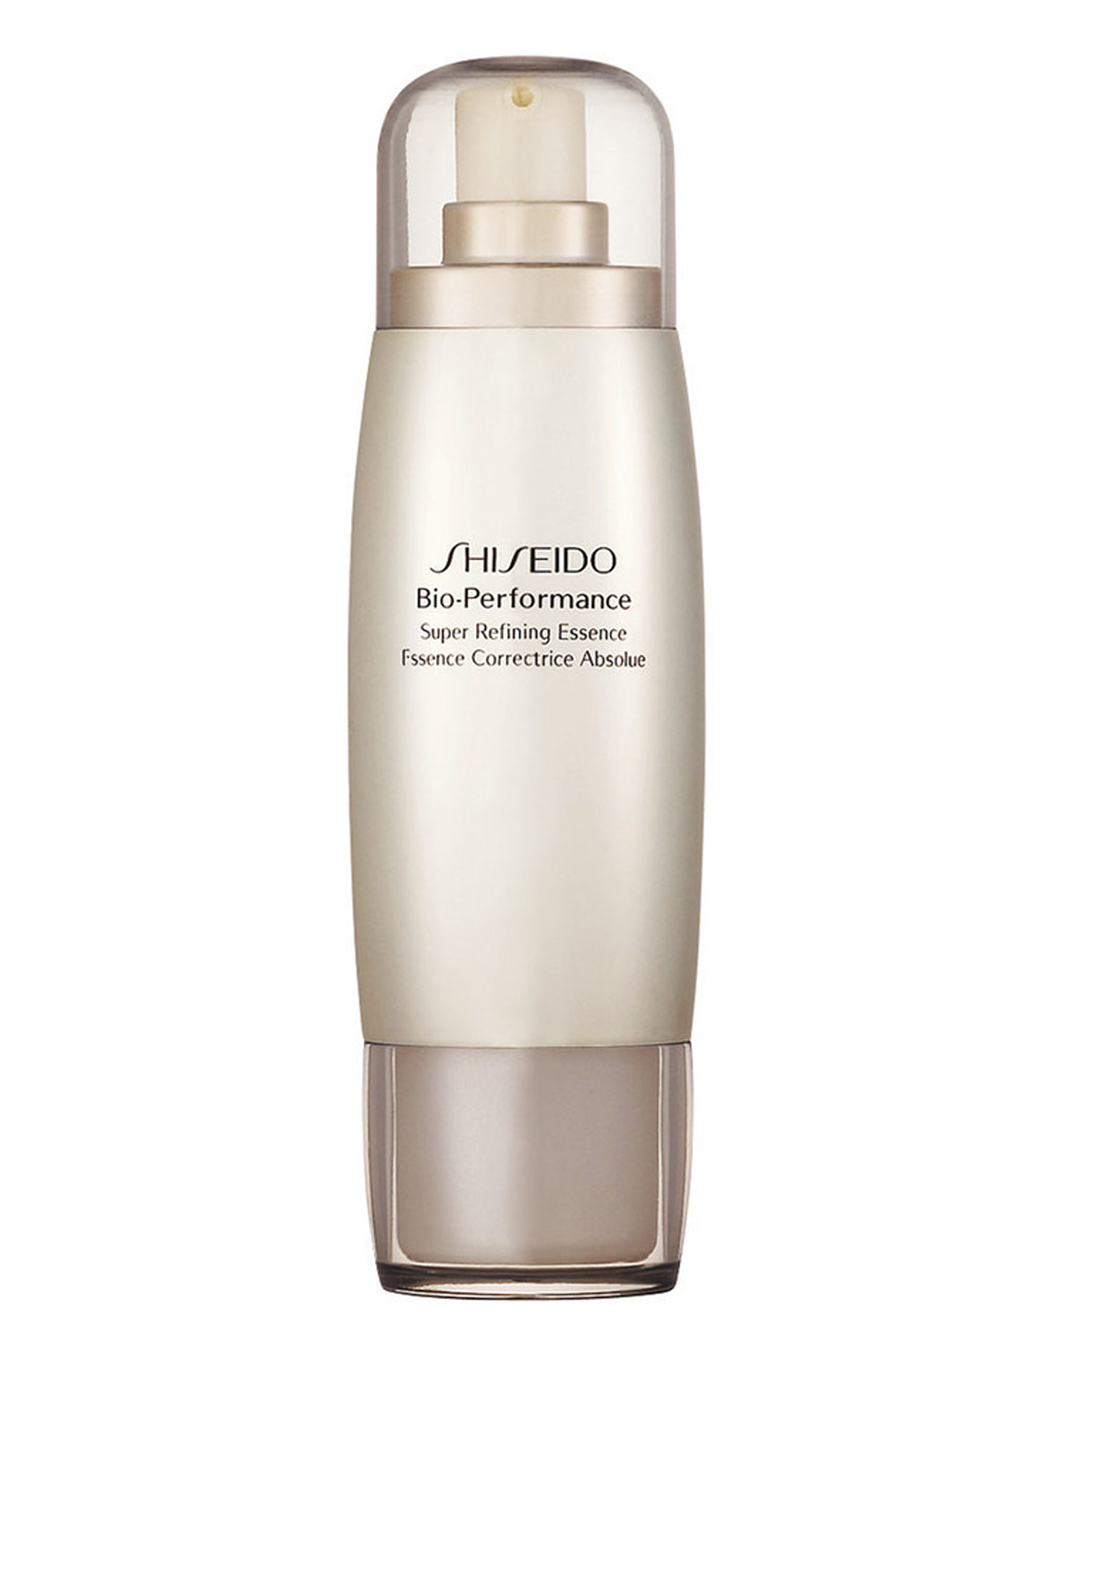 Shiseido Bio Performance Super Refining Essence, 50ml